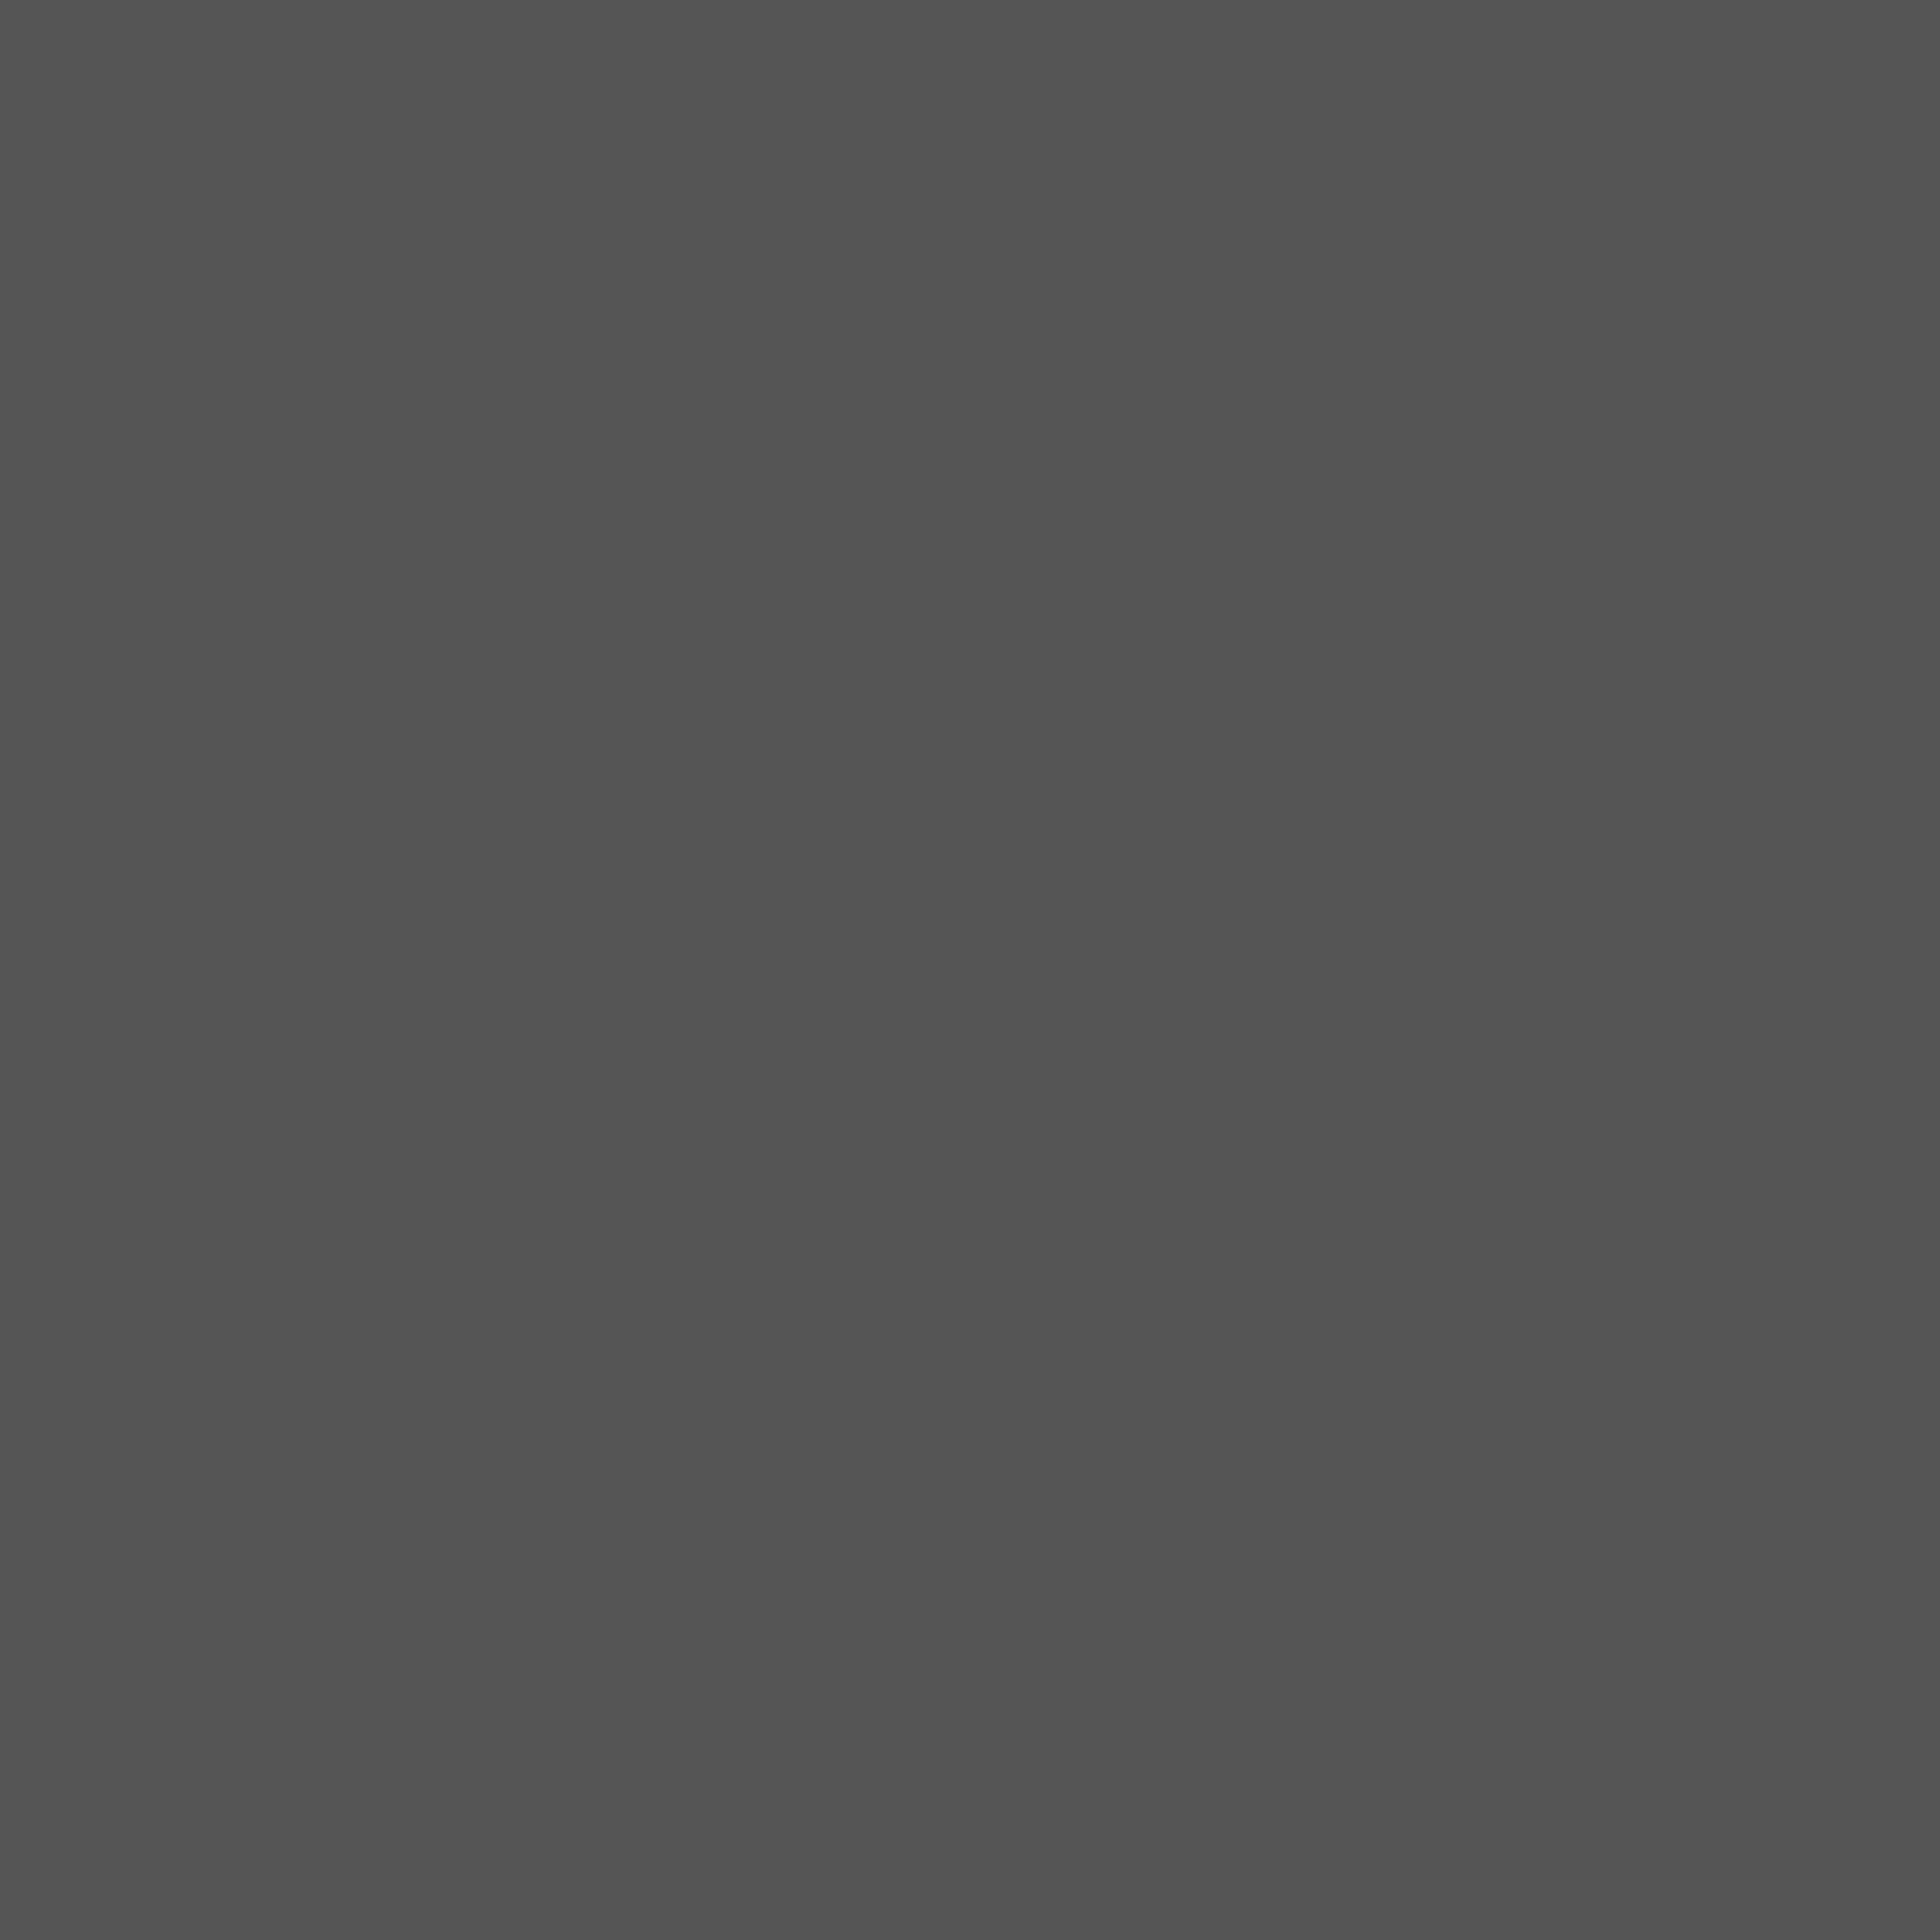 2732x2732 Davys Grey Solid Color Background